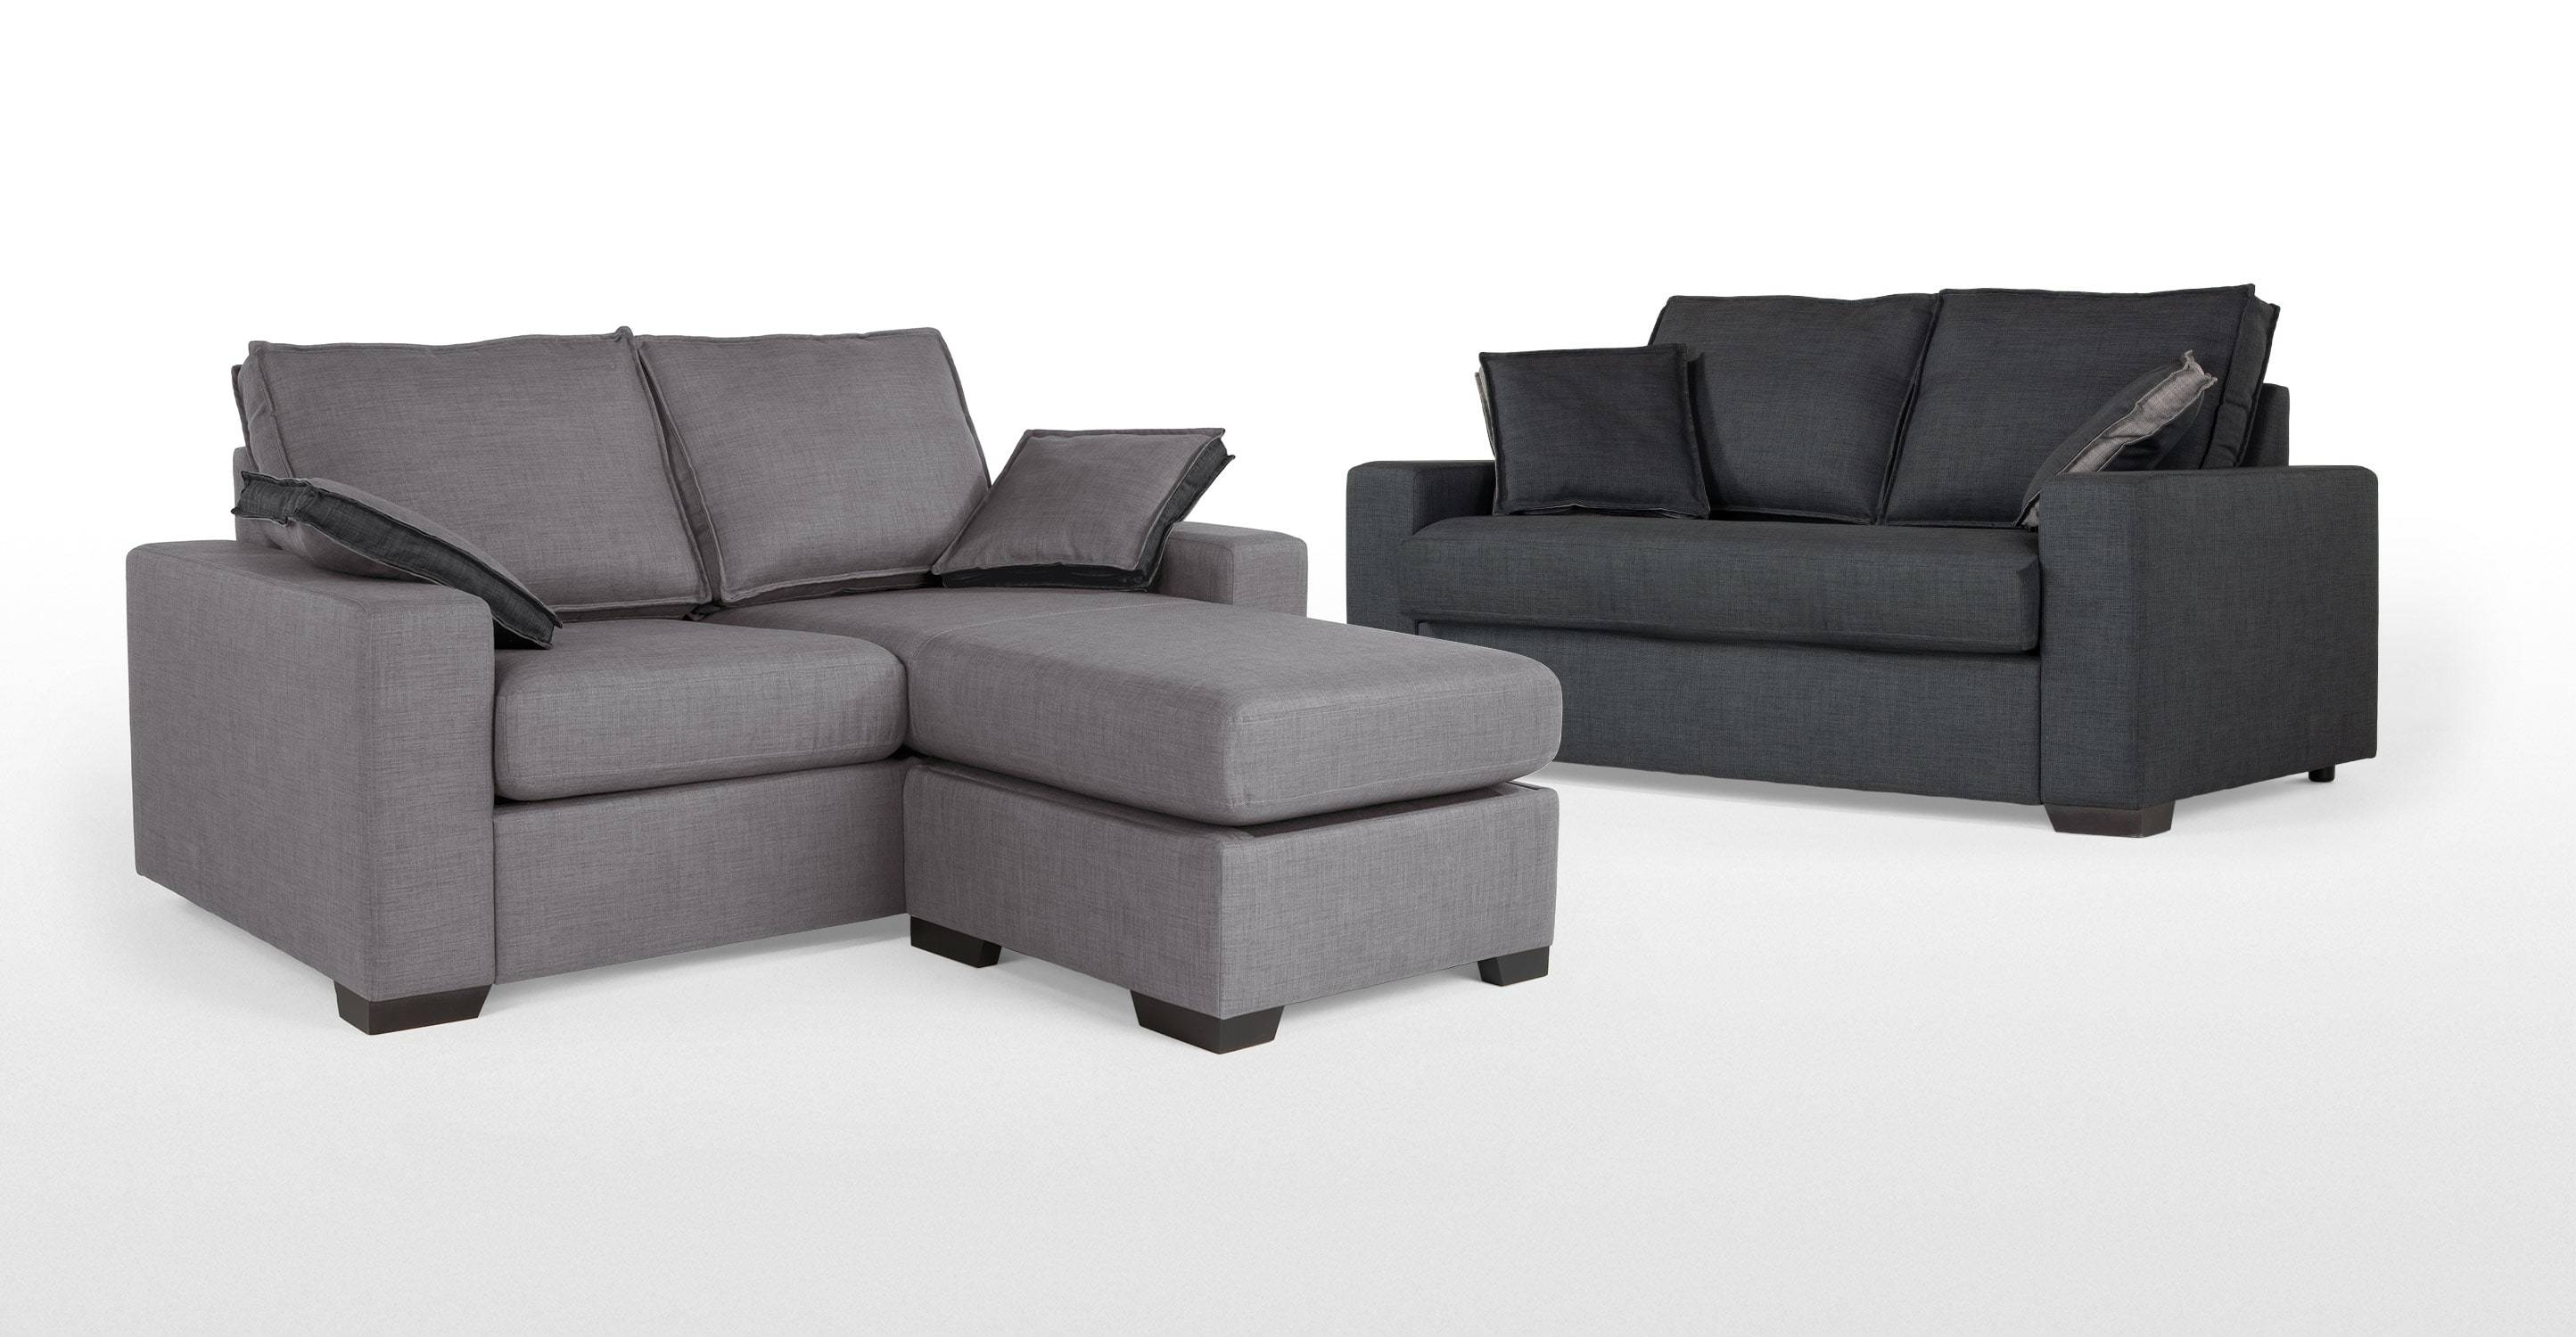 Sofas: Classic Meets Contemporary Chaise Sofa Bed For Ideal Living With Sofa Beds With Chaise Lounge (View 13 of 15)